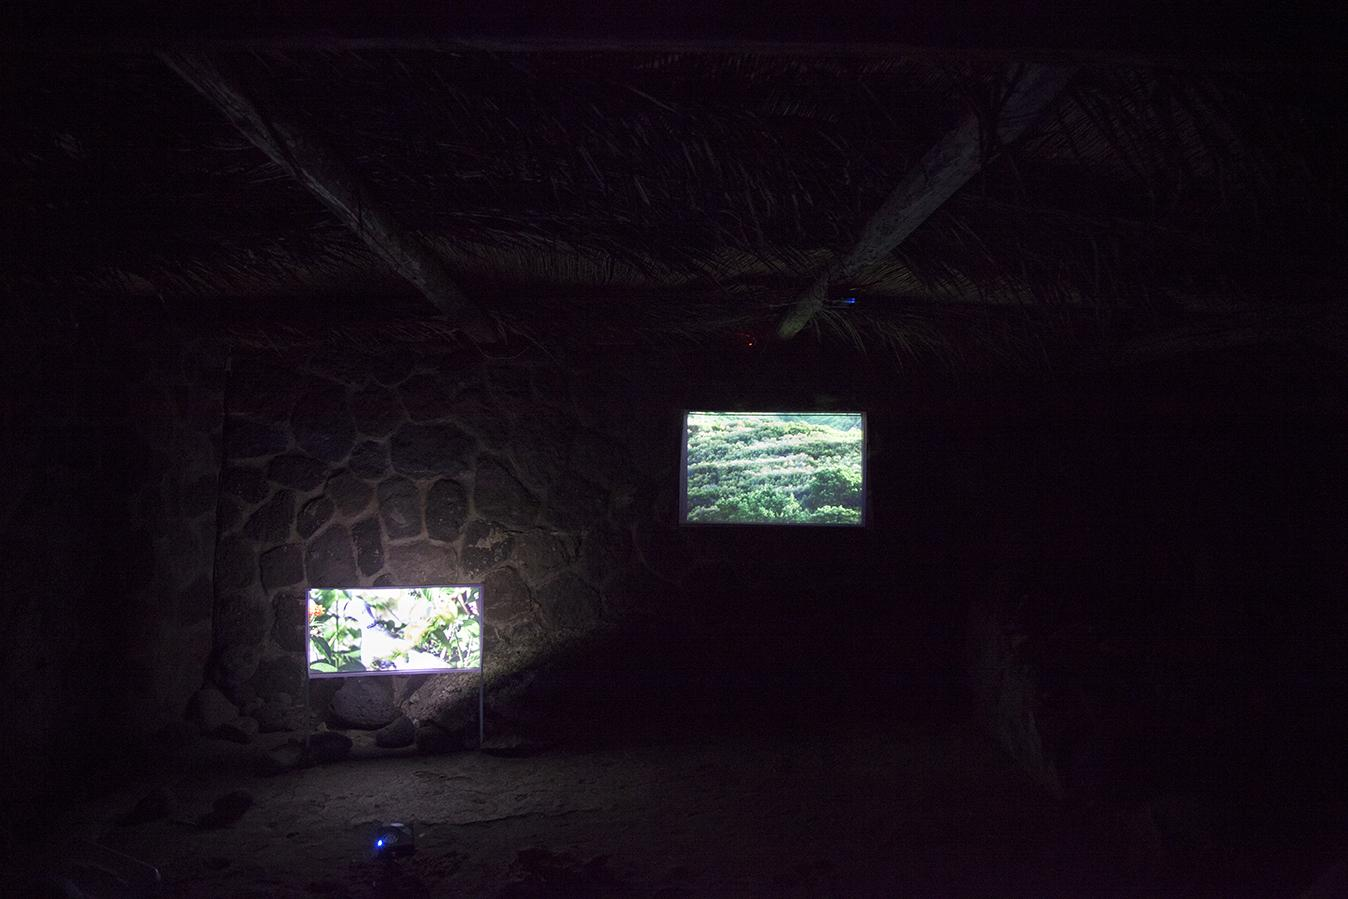 Martin Murphy /Arrivo di Aimée/, 2016 Two-channel video projection with sound, ft. Aimée Carmoz, 9:25 min Photo: Giovanna Silva Courtesy Fiorucci Art Trust, London